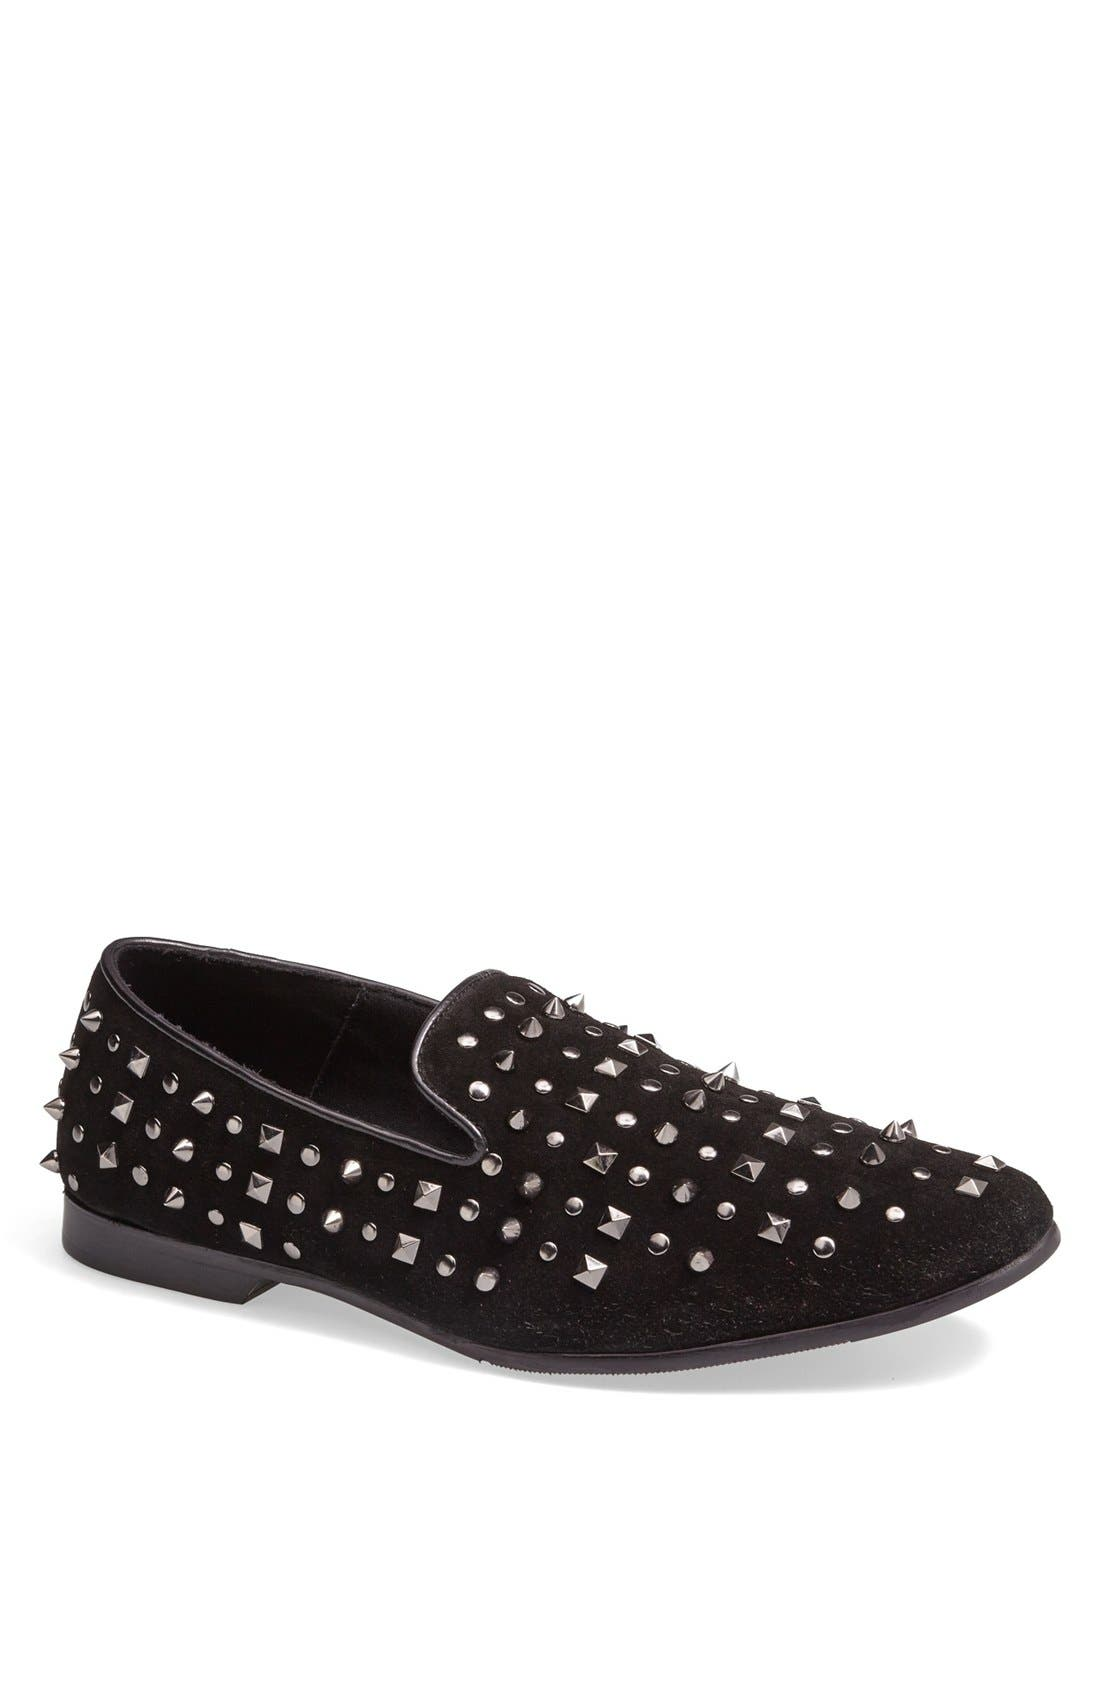 Main Image - ALDO 'Coyan' Studded Loafer